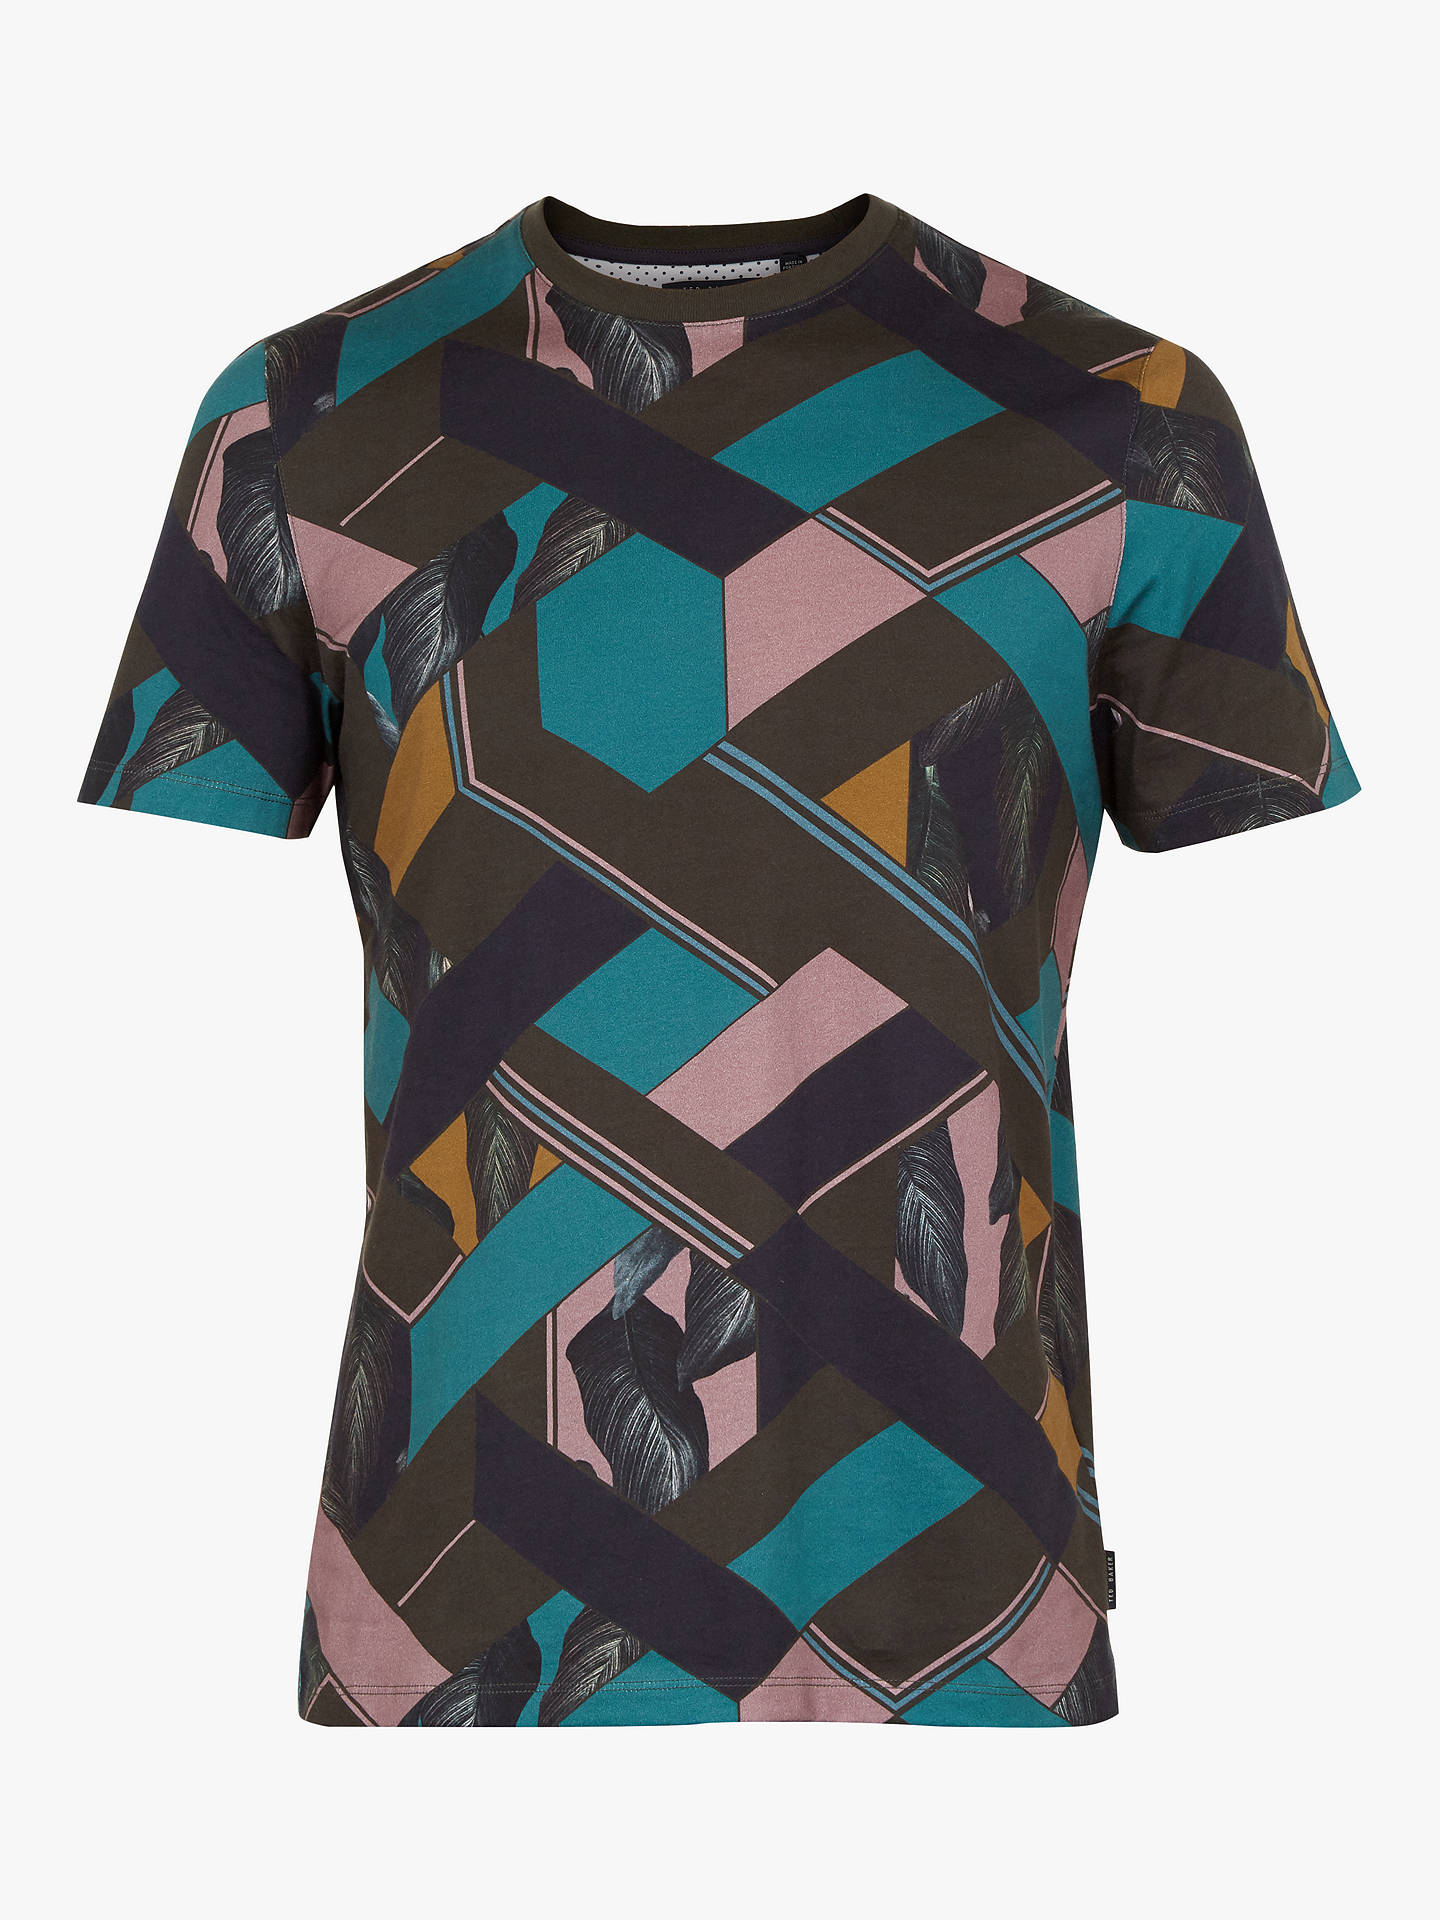 Buy Ted Baker Apahol Print T-Shirt, Green Khaki, XXXL Online at johnlewis.com